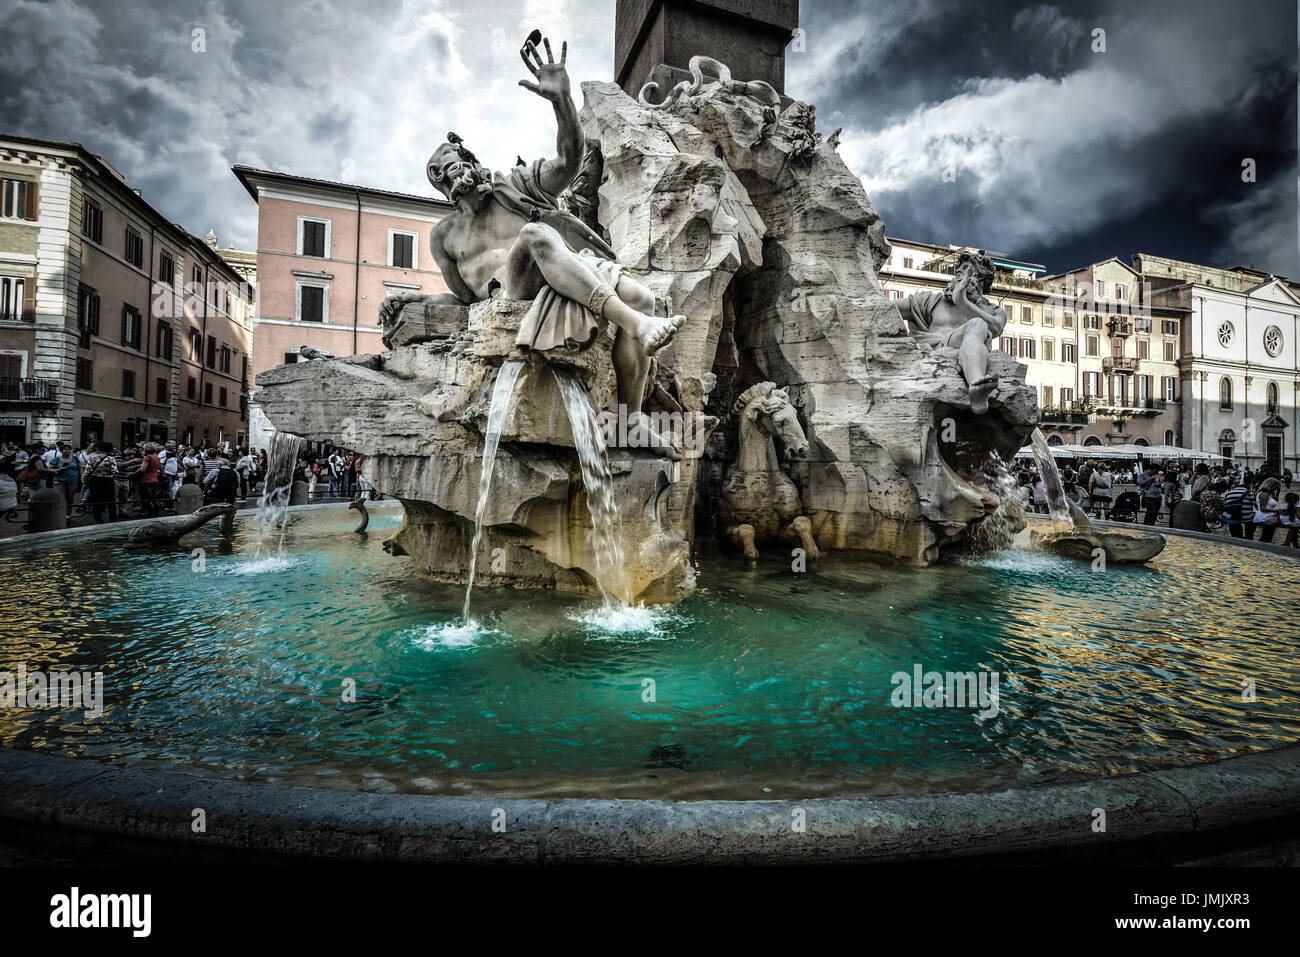 The Fountain of the Four Rivers by Bernini in the Piazza Navona in Rome Italy. The skies are dark with a storm coming. - Stock Image